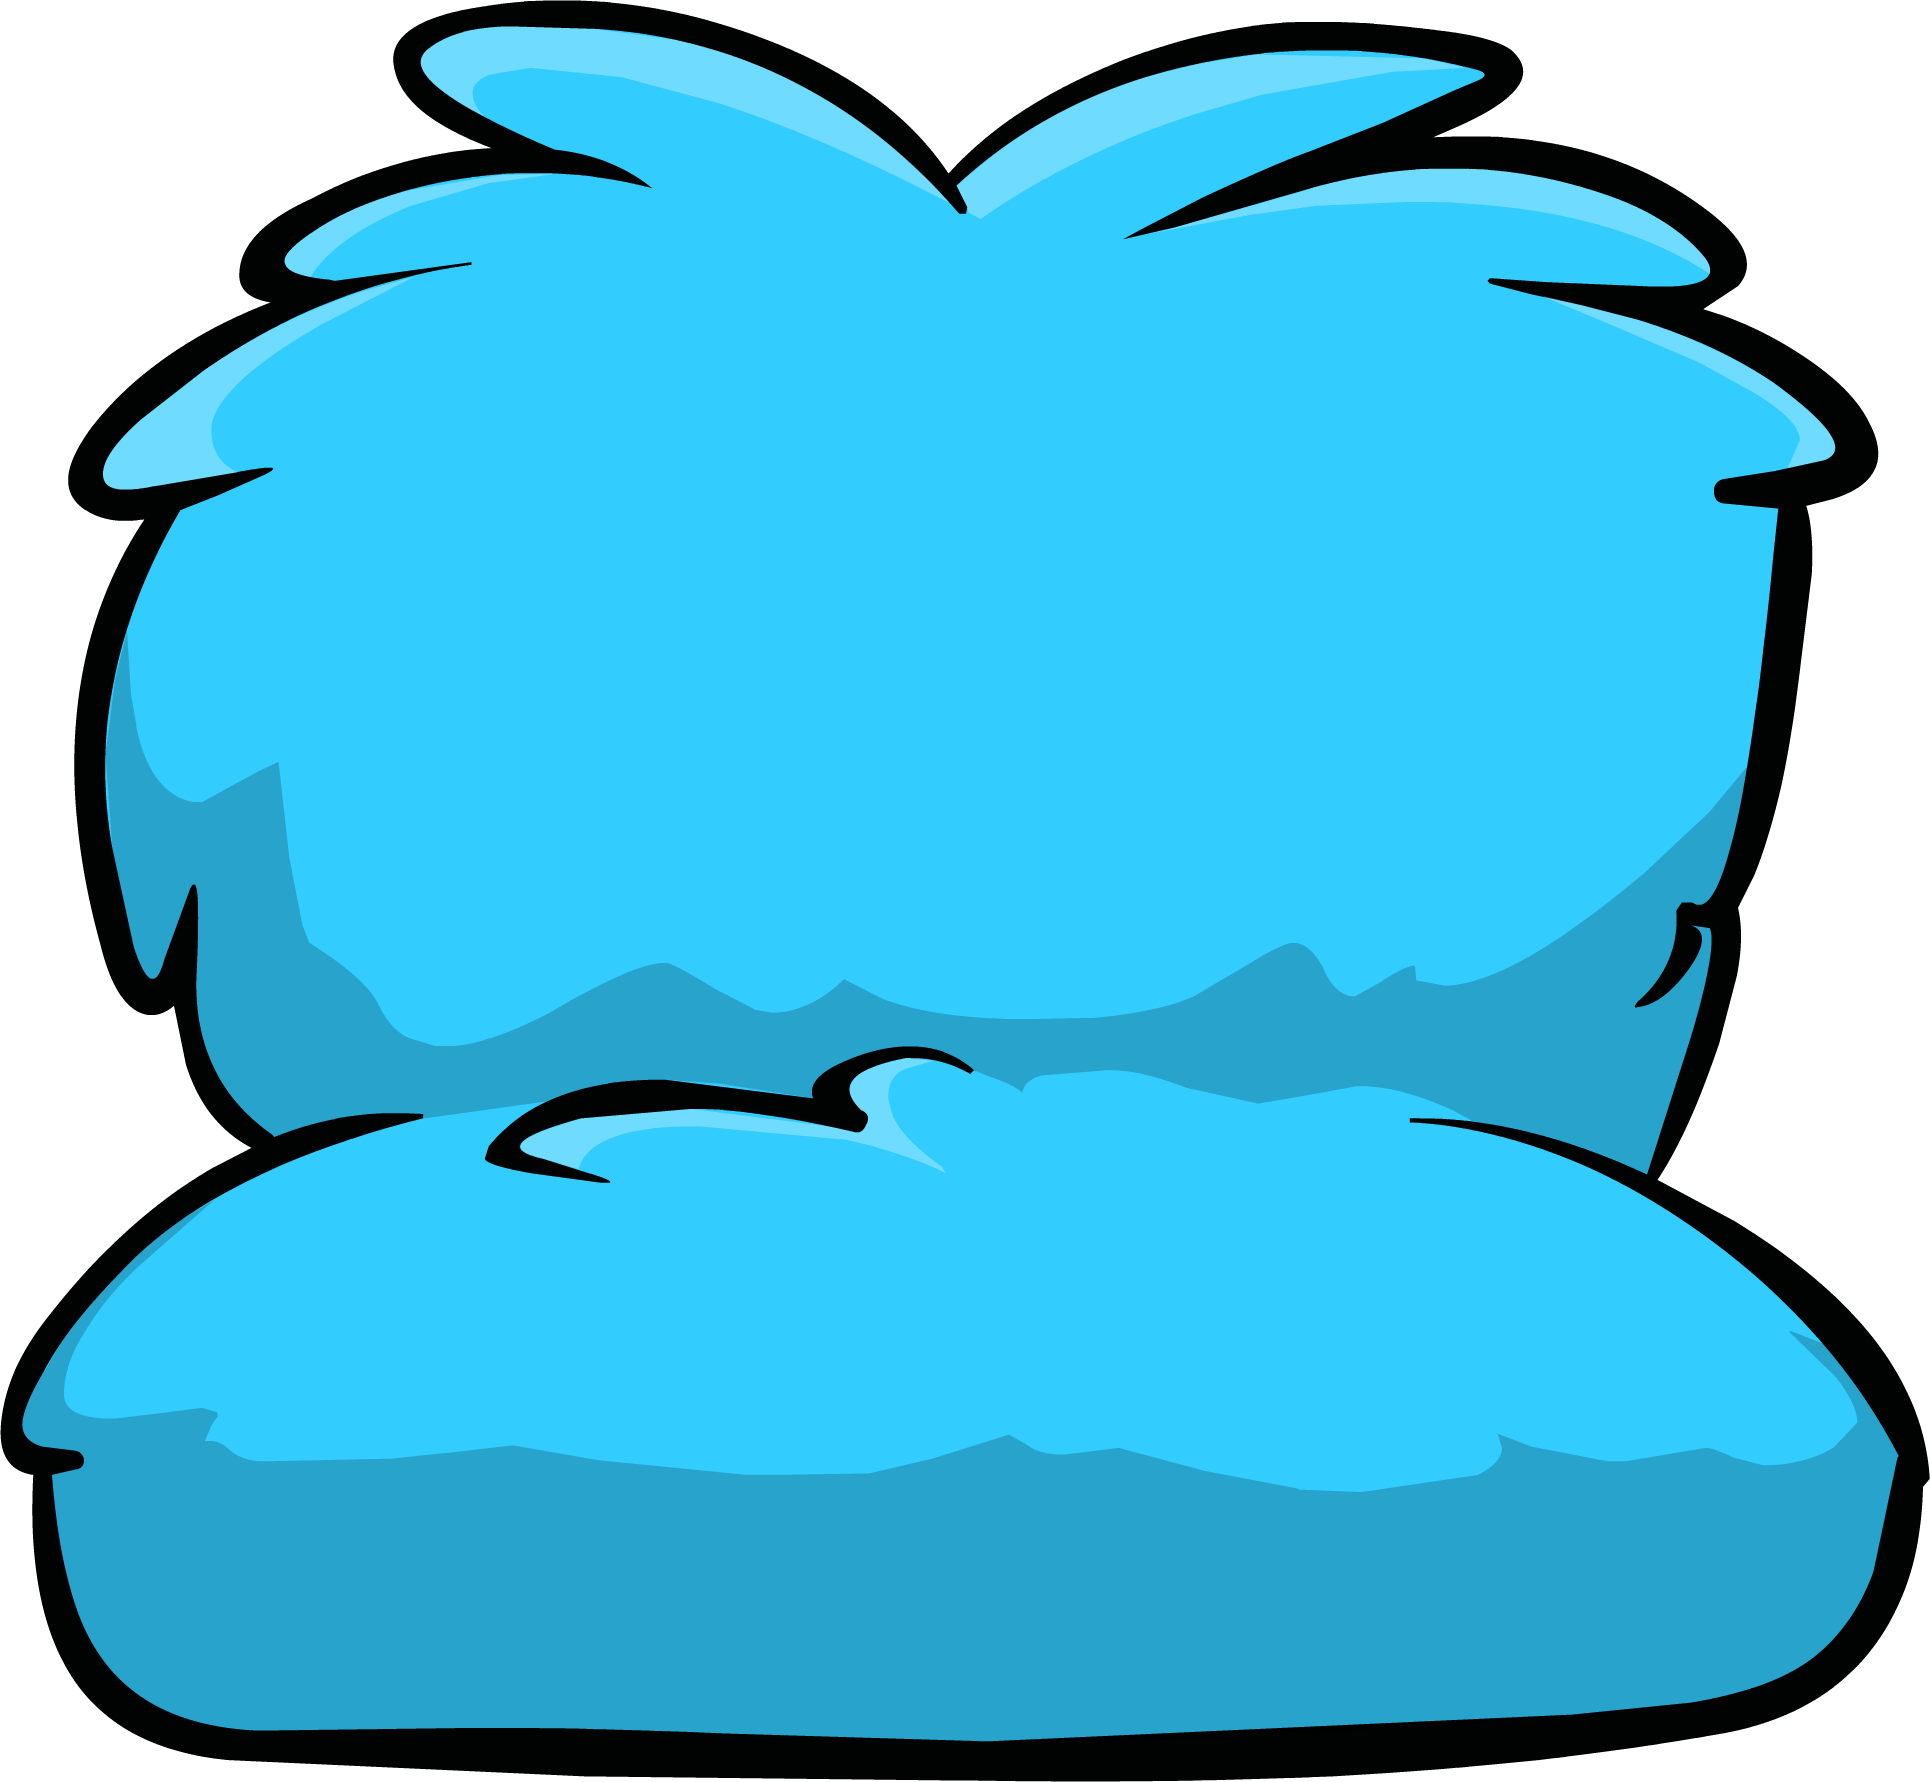 Couch clipart blue couch. Image fuzzy icon id